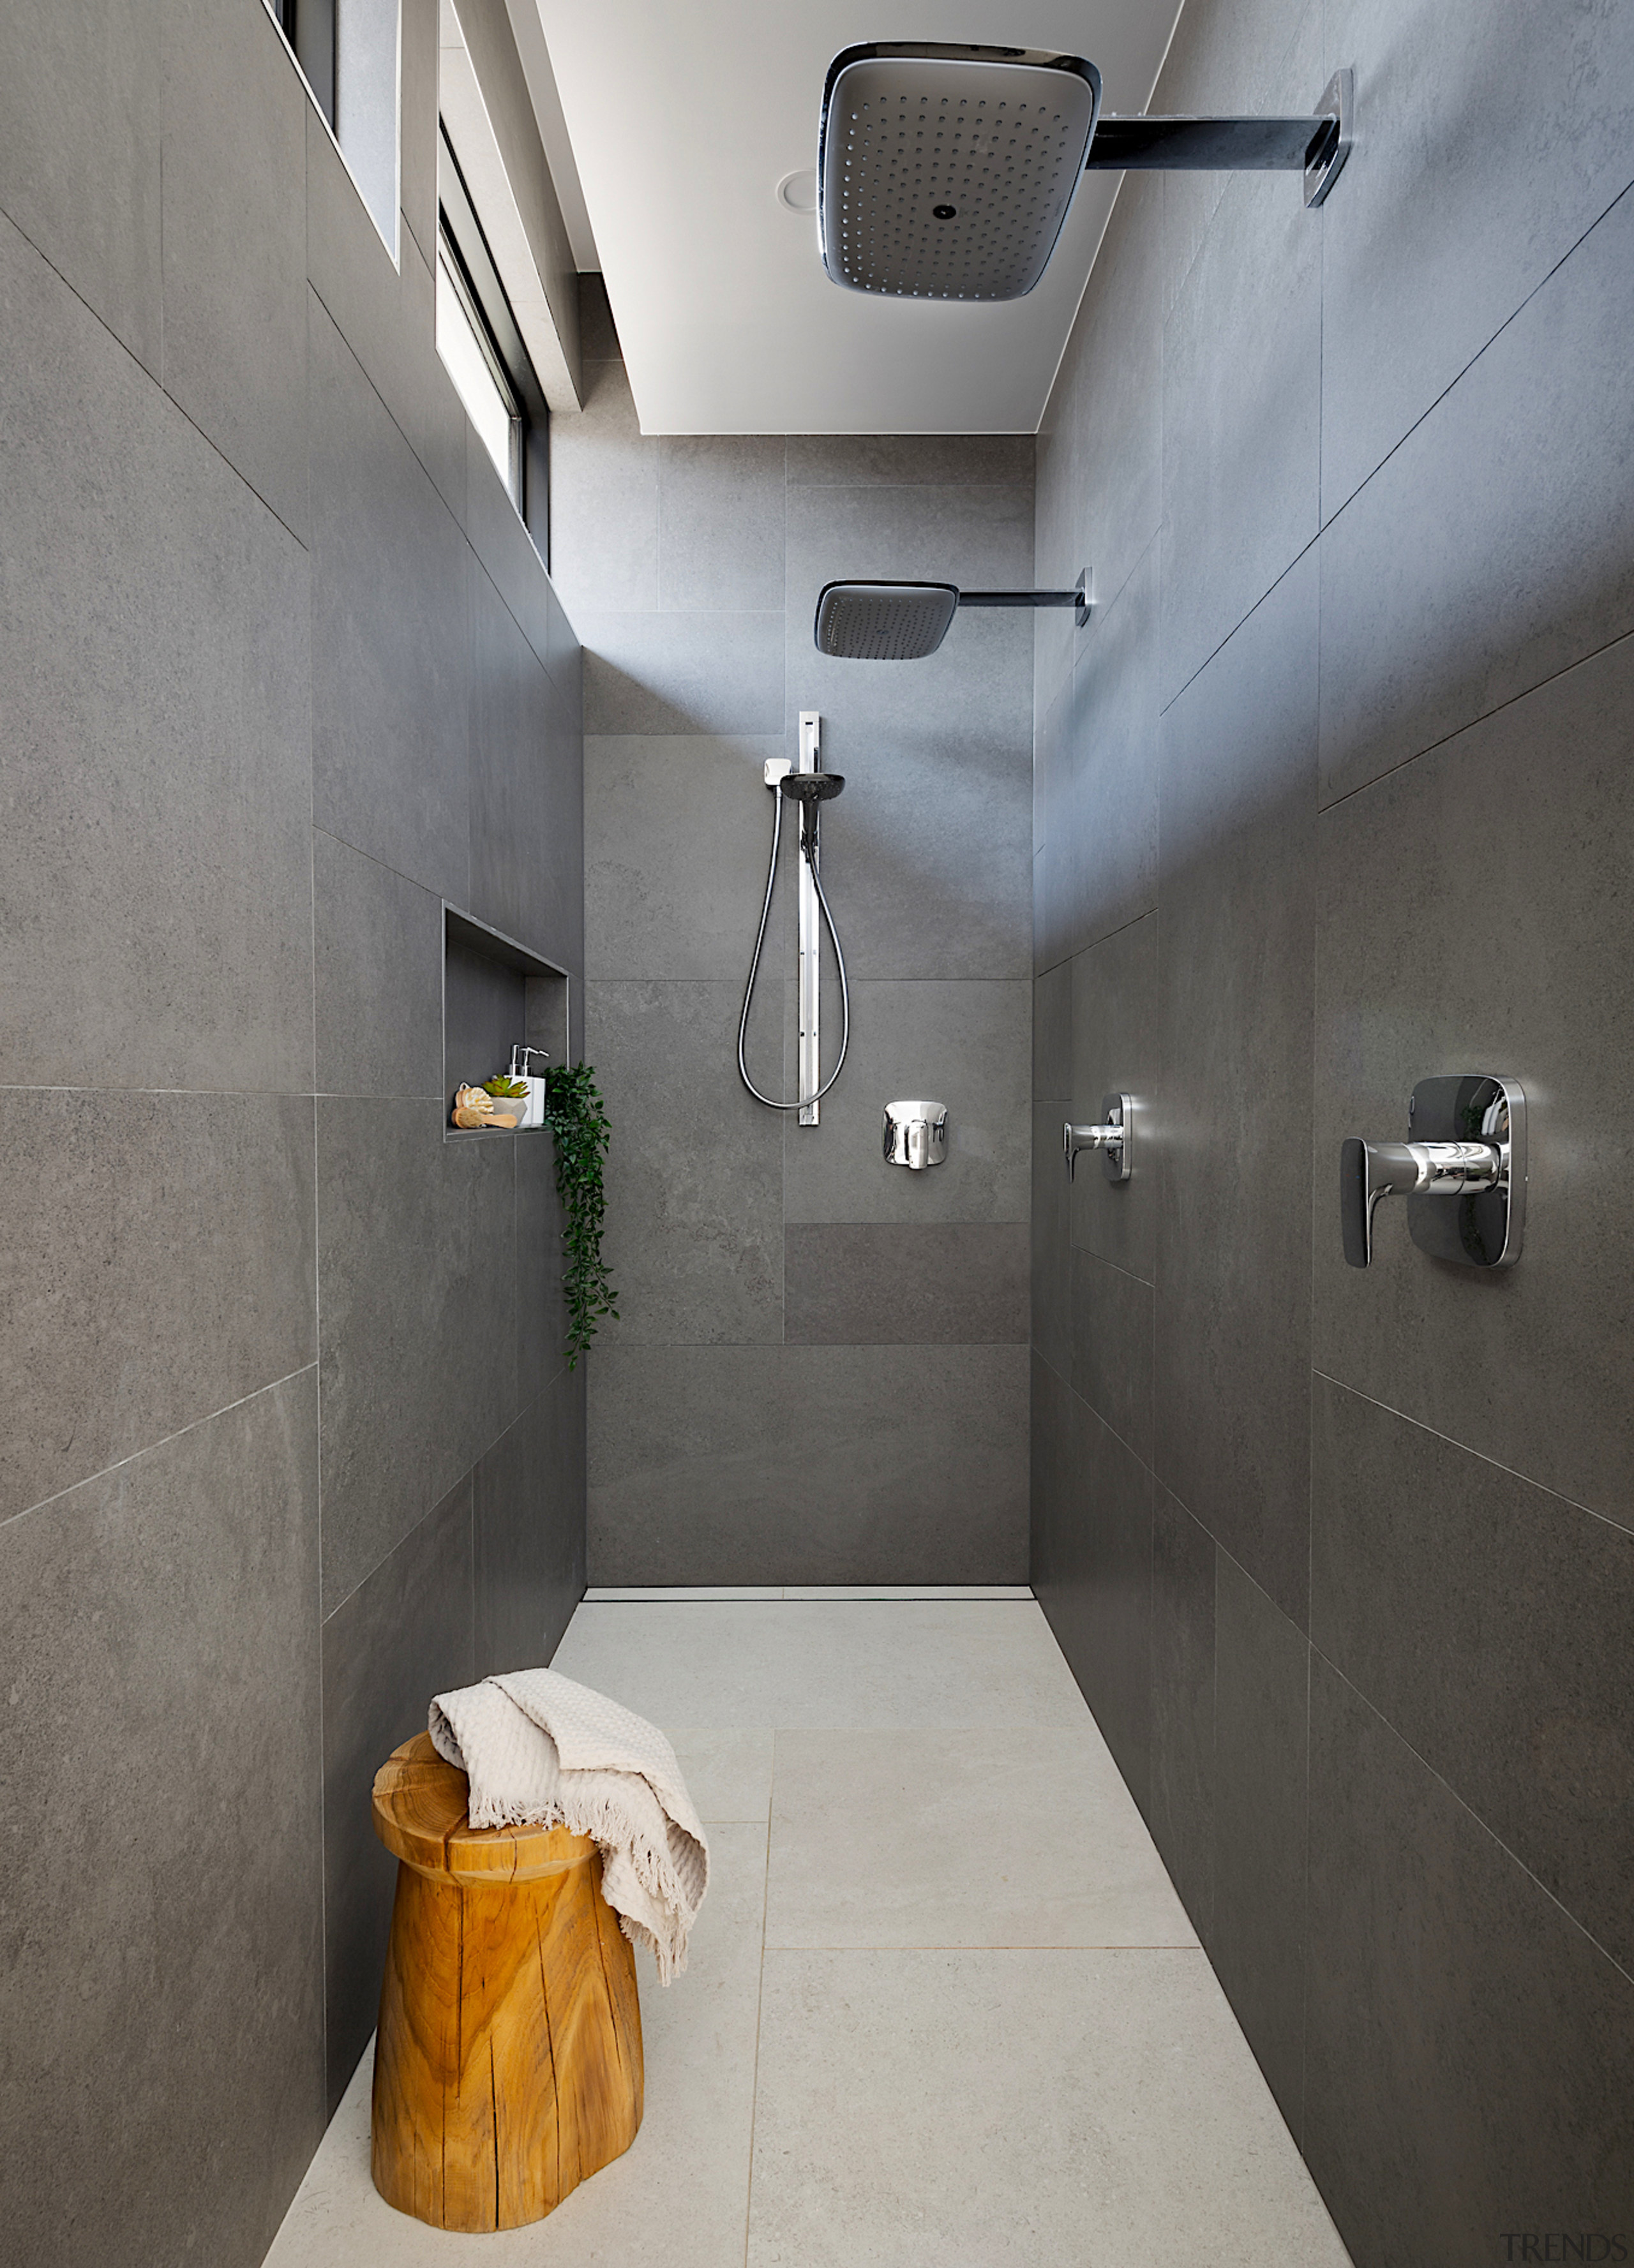 The shower is tucked out of sight behind architecture, bathroom, building, ceiling, daylighting, floor, interior design, plumbing fixture, property, room, tile, wall, gray